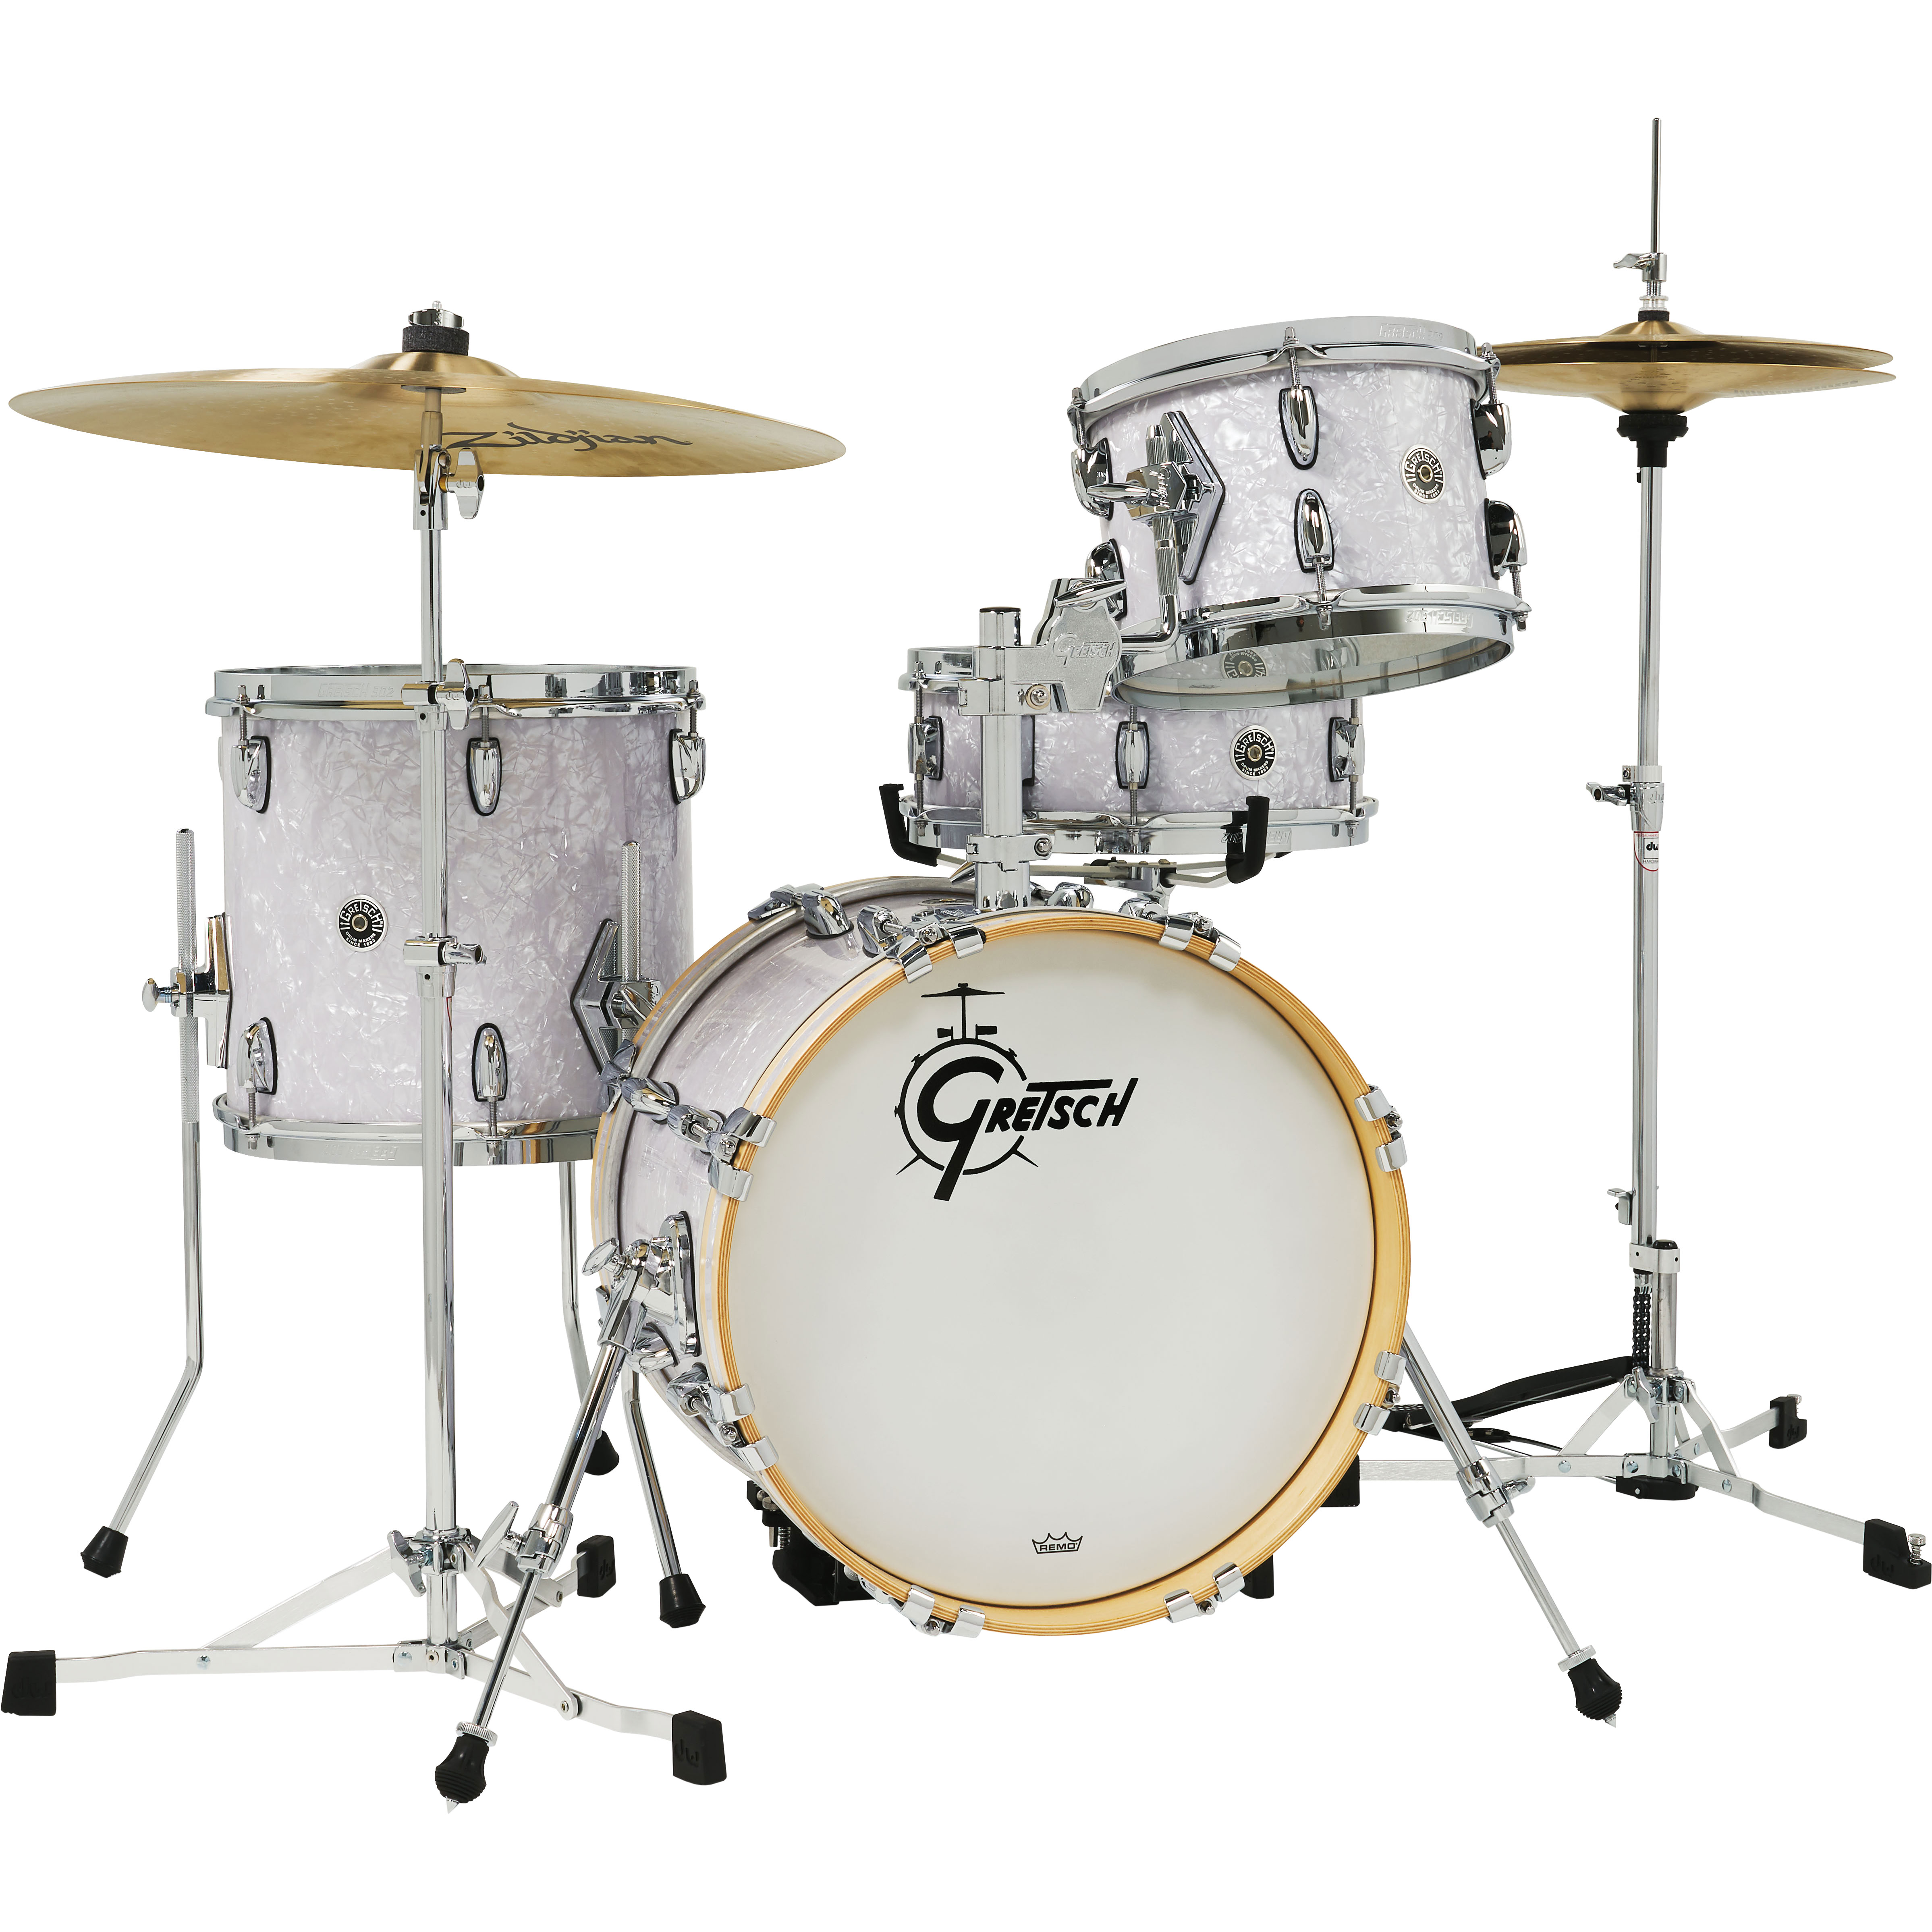 """Gretsch Brooklyn 4-Piece Micro Kit Drum Set Shell Pack (16"""" Bass, 10/13"""" Toms, 13"""" Snare) in White Marine Pearl"""